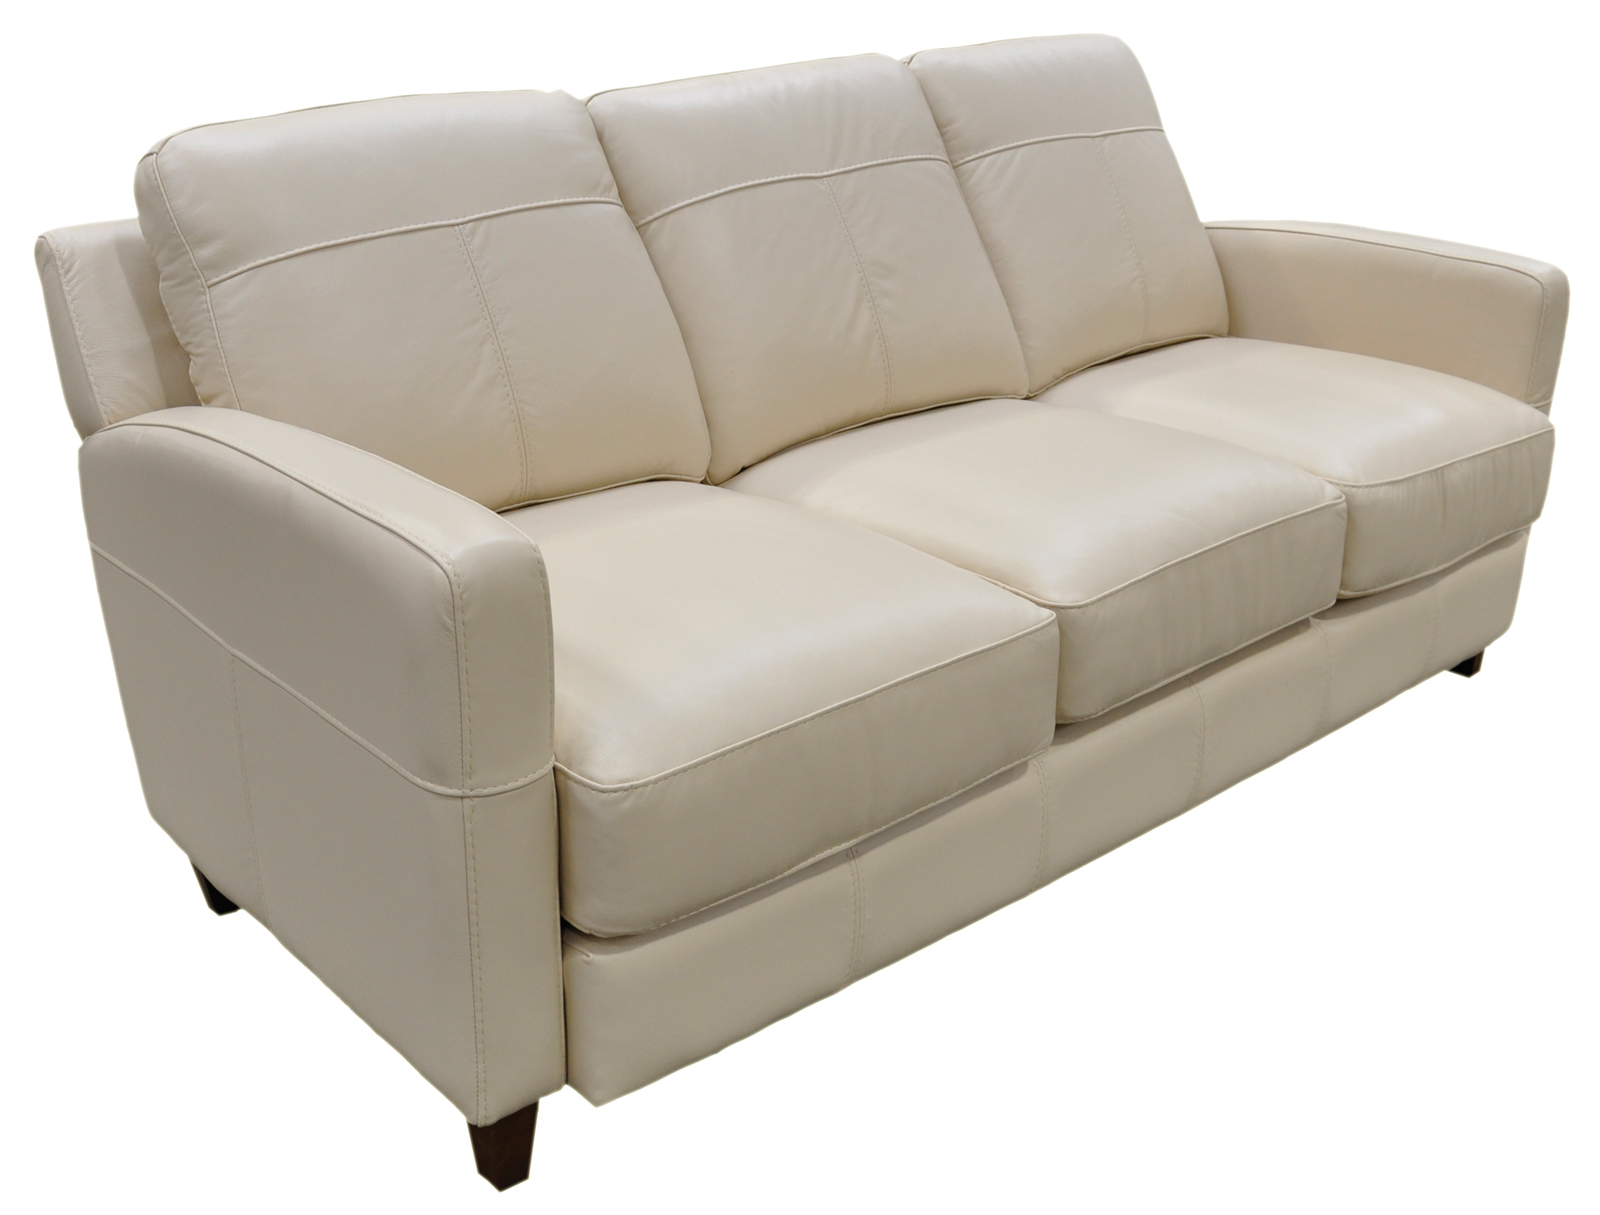 Skyline Sofa Sofa Loveseat Coffee Table 2 End Tables And